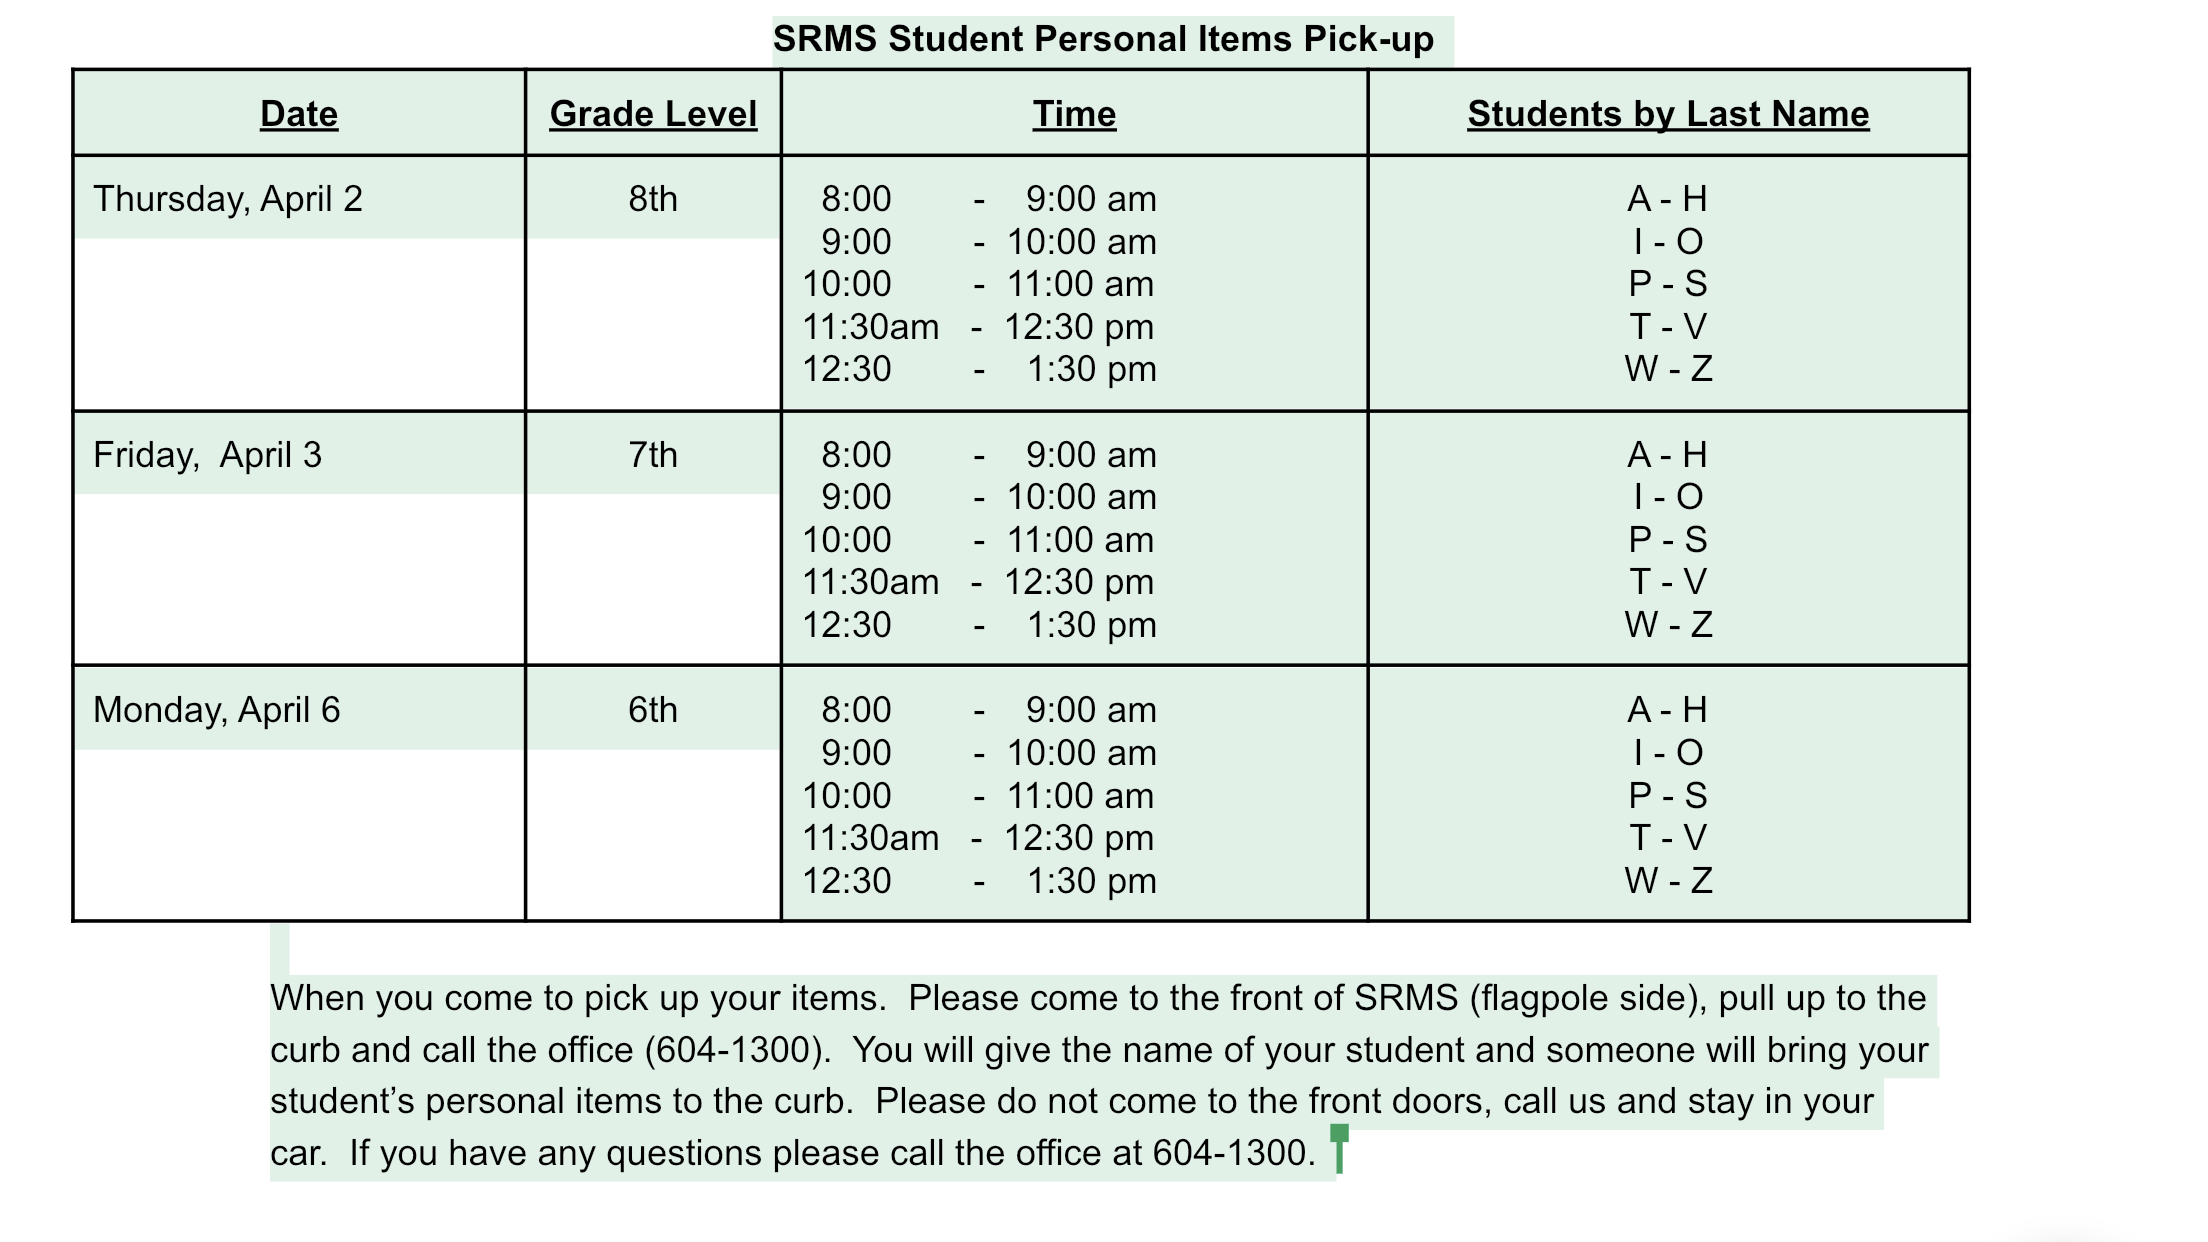 SRMS Students here is the schedule to pick up your personal belongings